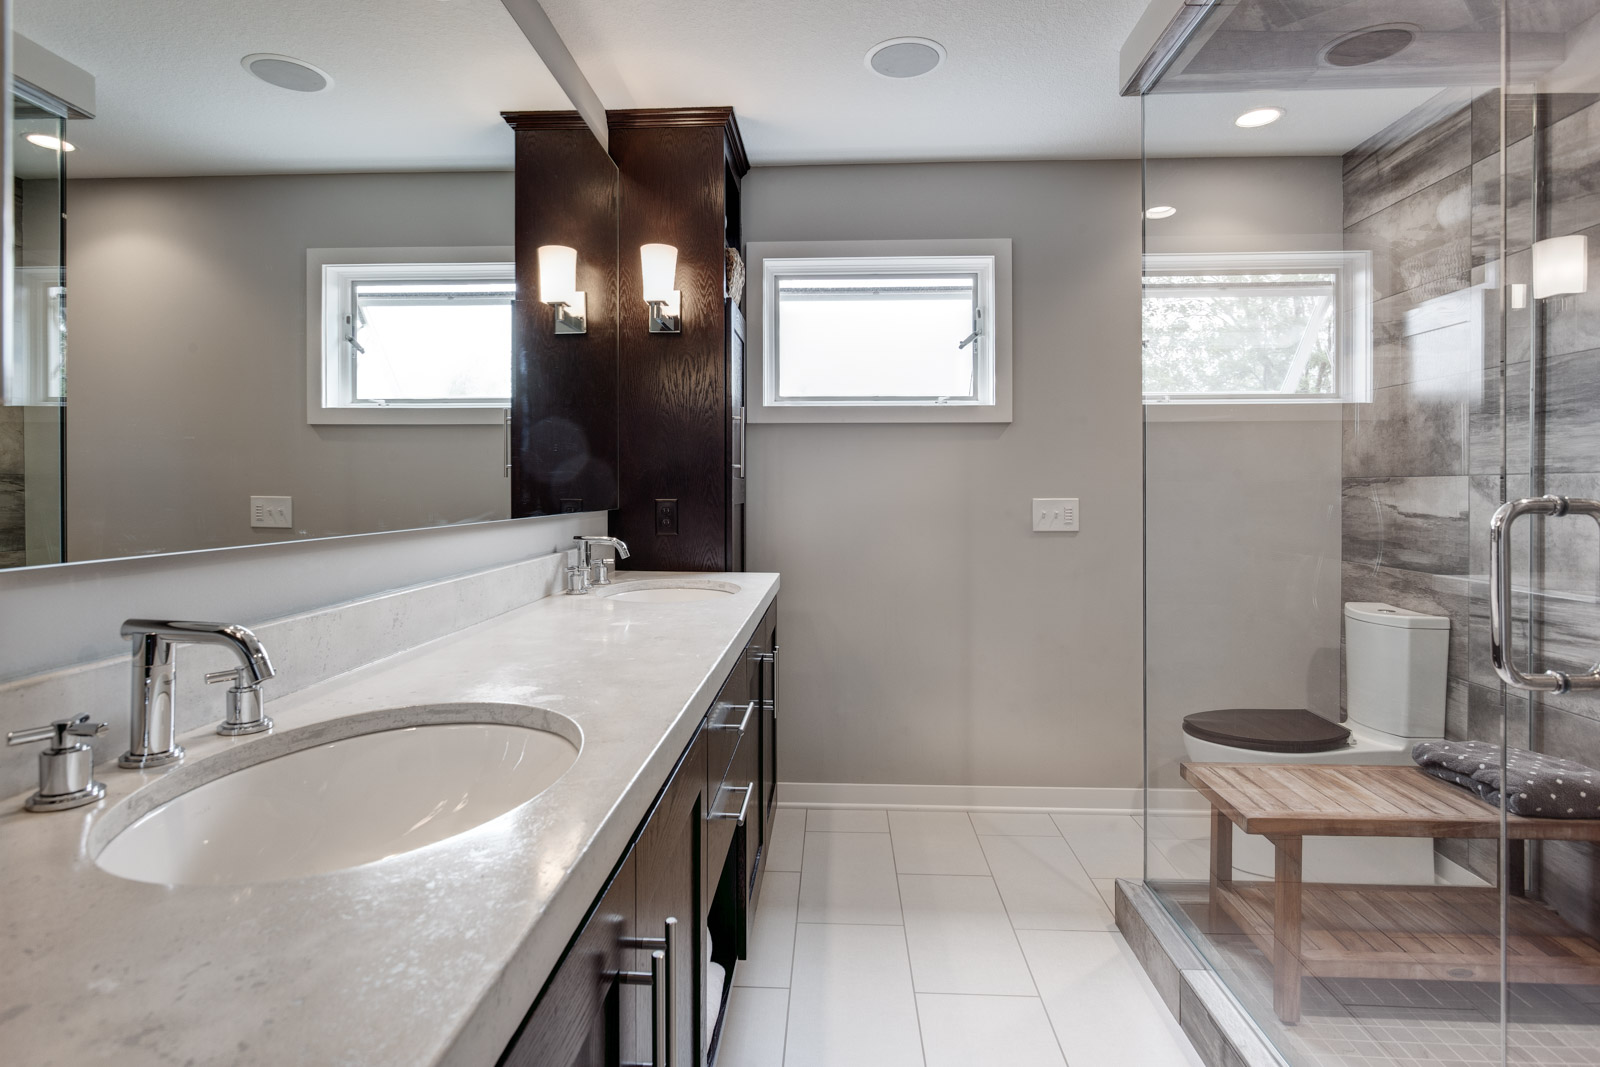 Bathroom remodeling minneapolis st paul minnesota for Bath remodel mn